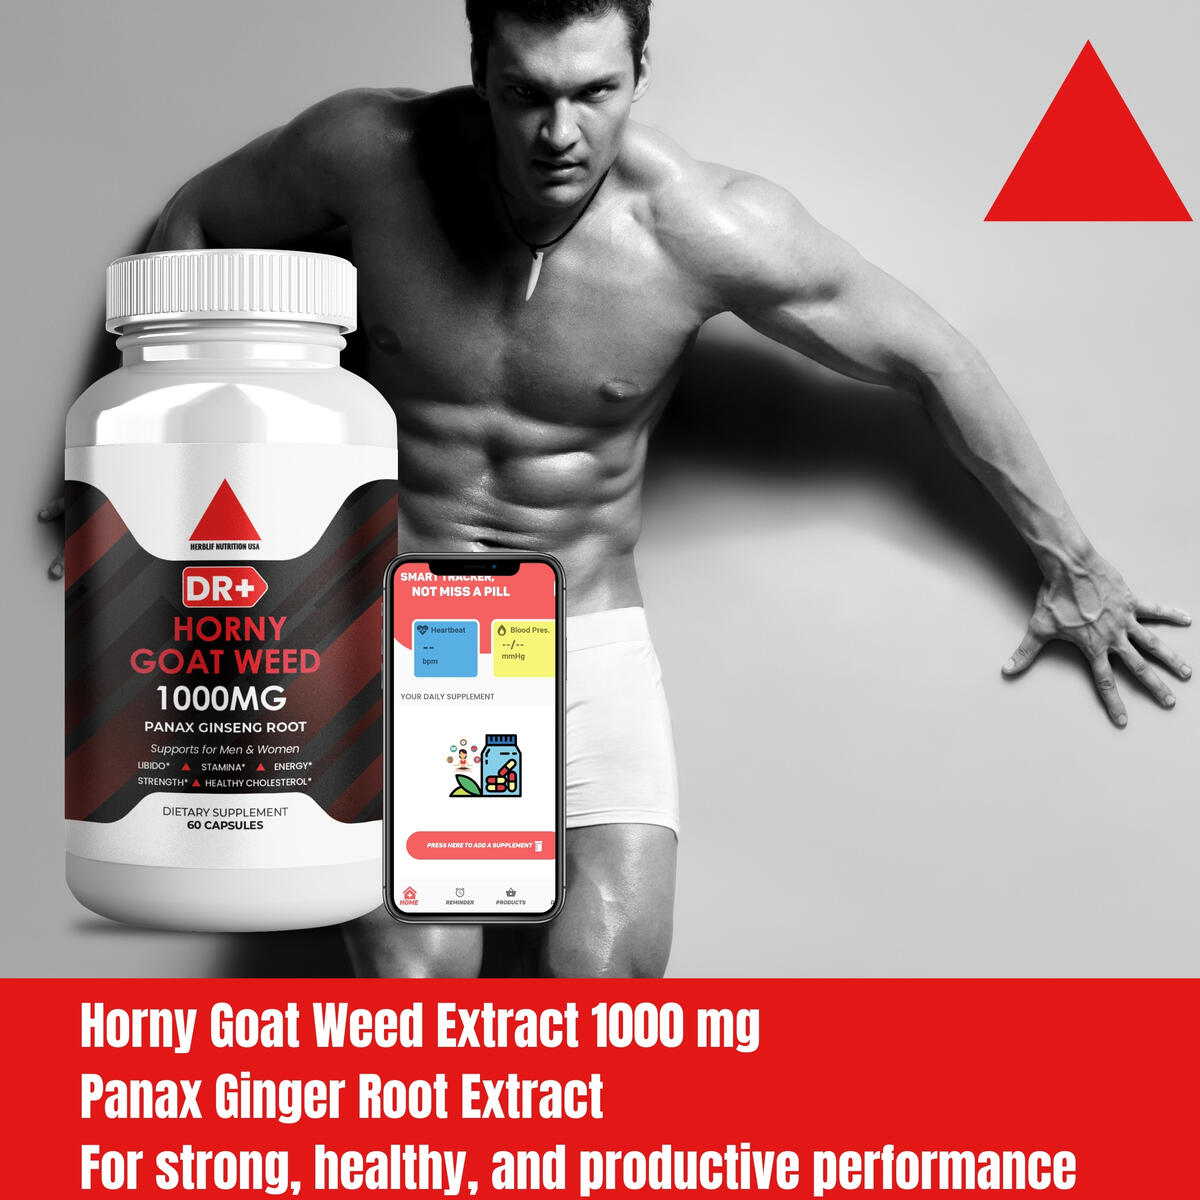 Horny Goat Weed Extract - Testosterone Booster for Men - Enhance Stamina Performance Libido with Epimedium, Maca, Tribulus Terrestris, L Arginine, and Ginseng